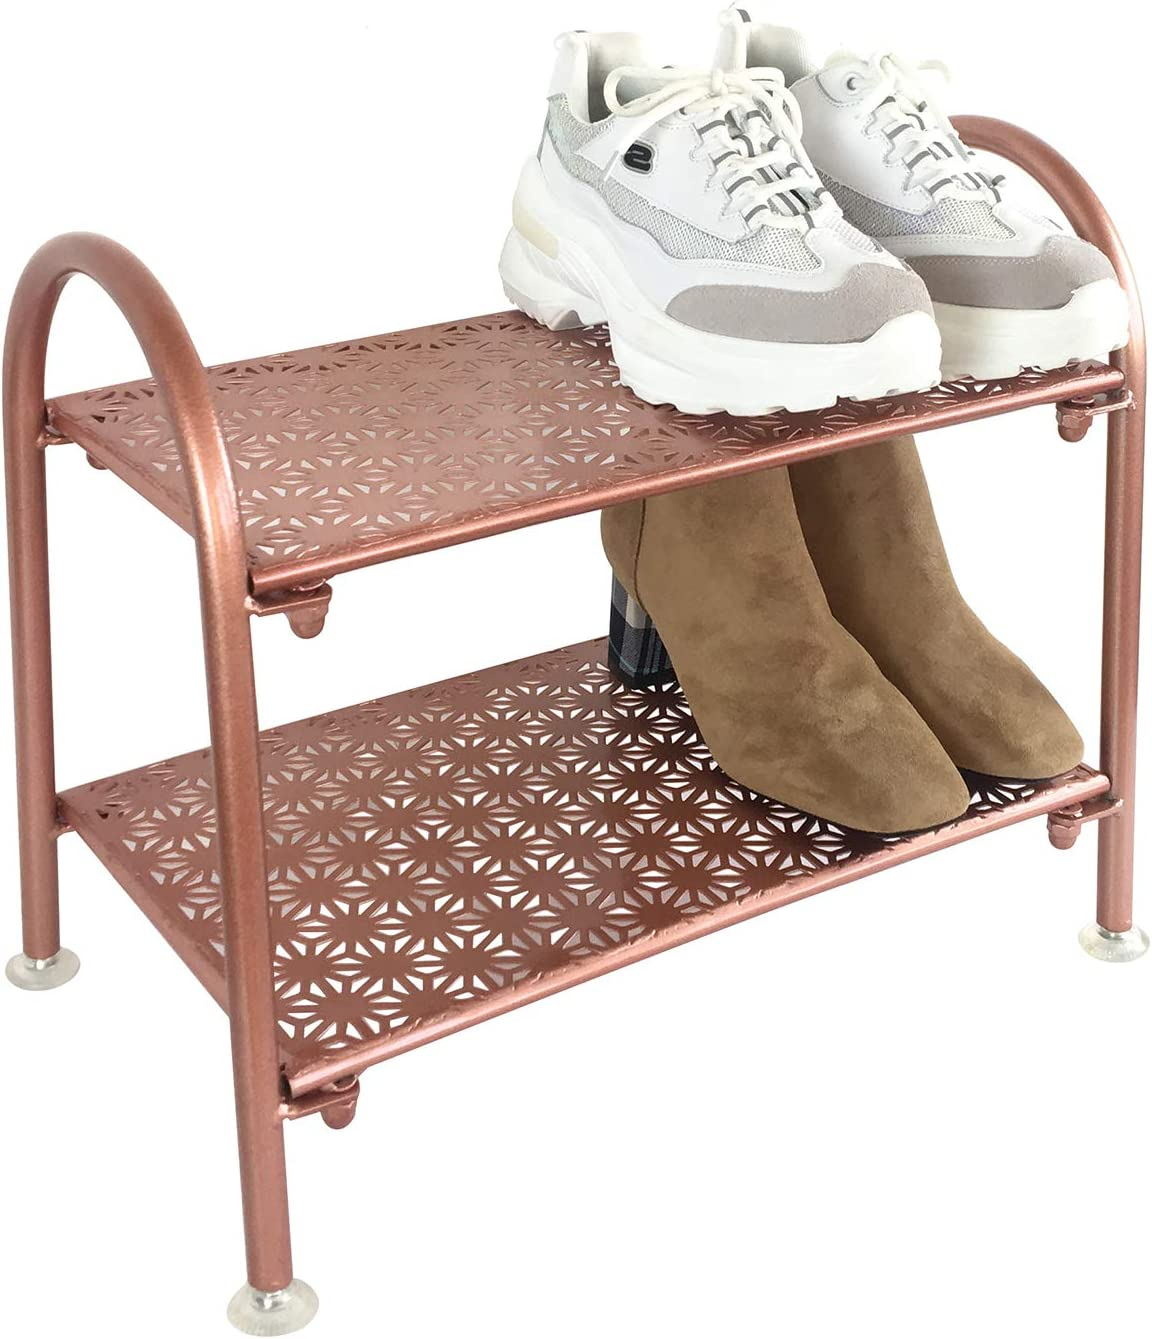 MsFun Rose Gold 2 Tier Star Shoe Rack - Shoe Rack for Entryway - Shoe Rack Organizer Shoes Boots - Great for Home Office and Laundry Room (Rose Gold Small)